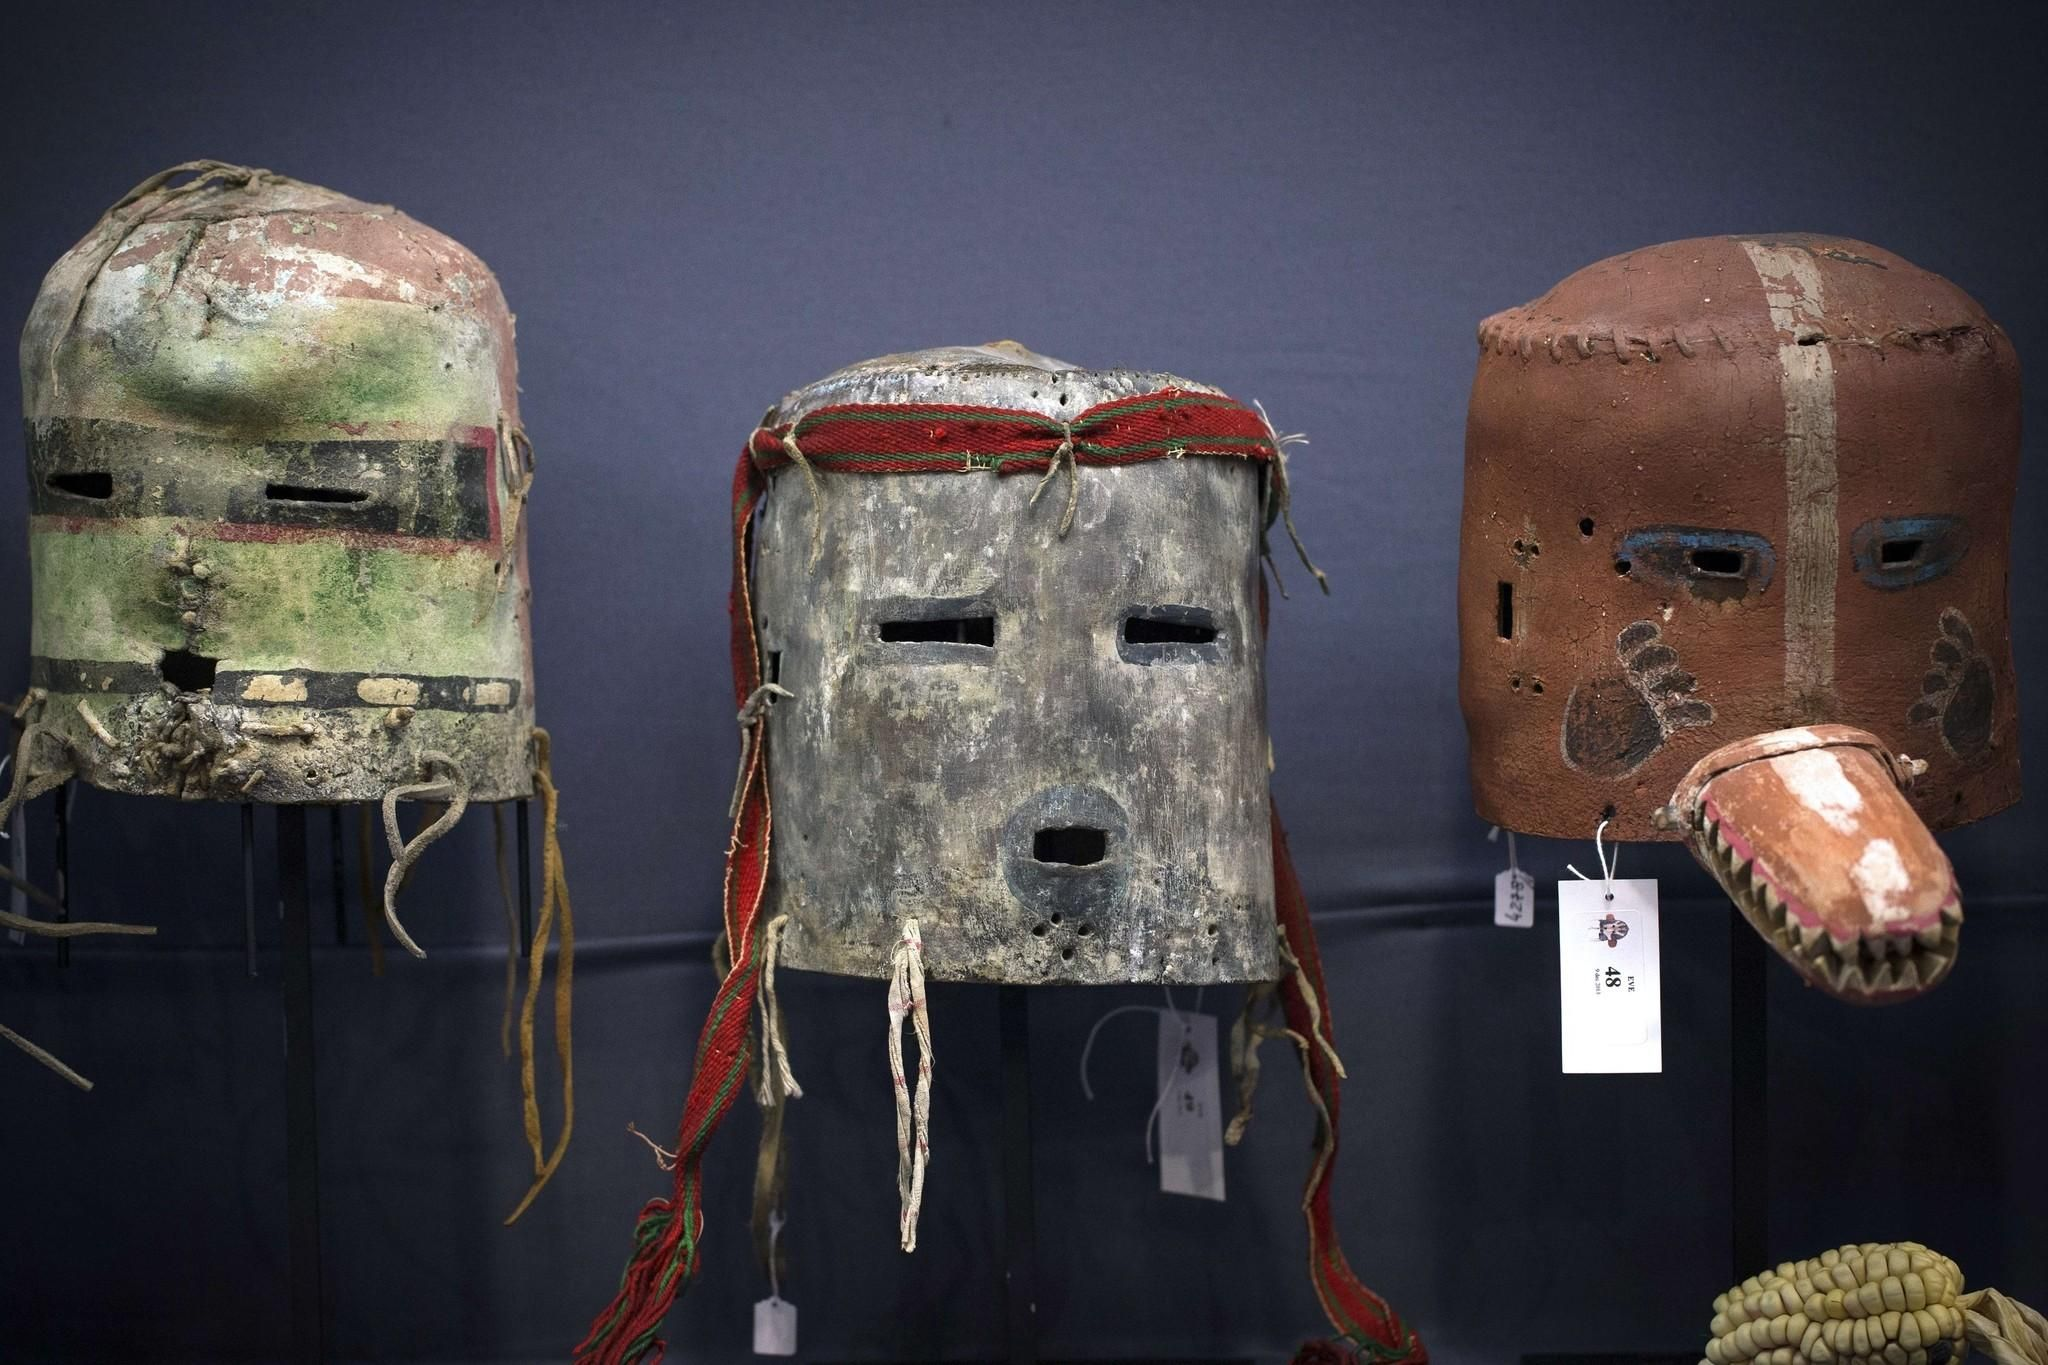 A bid to restore spiritual artifacts to Hopi and Apache tribes - Los Angeles Times